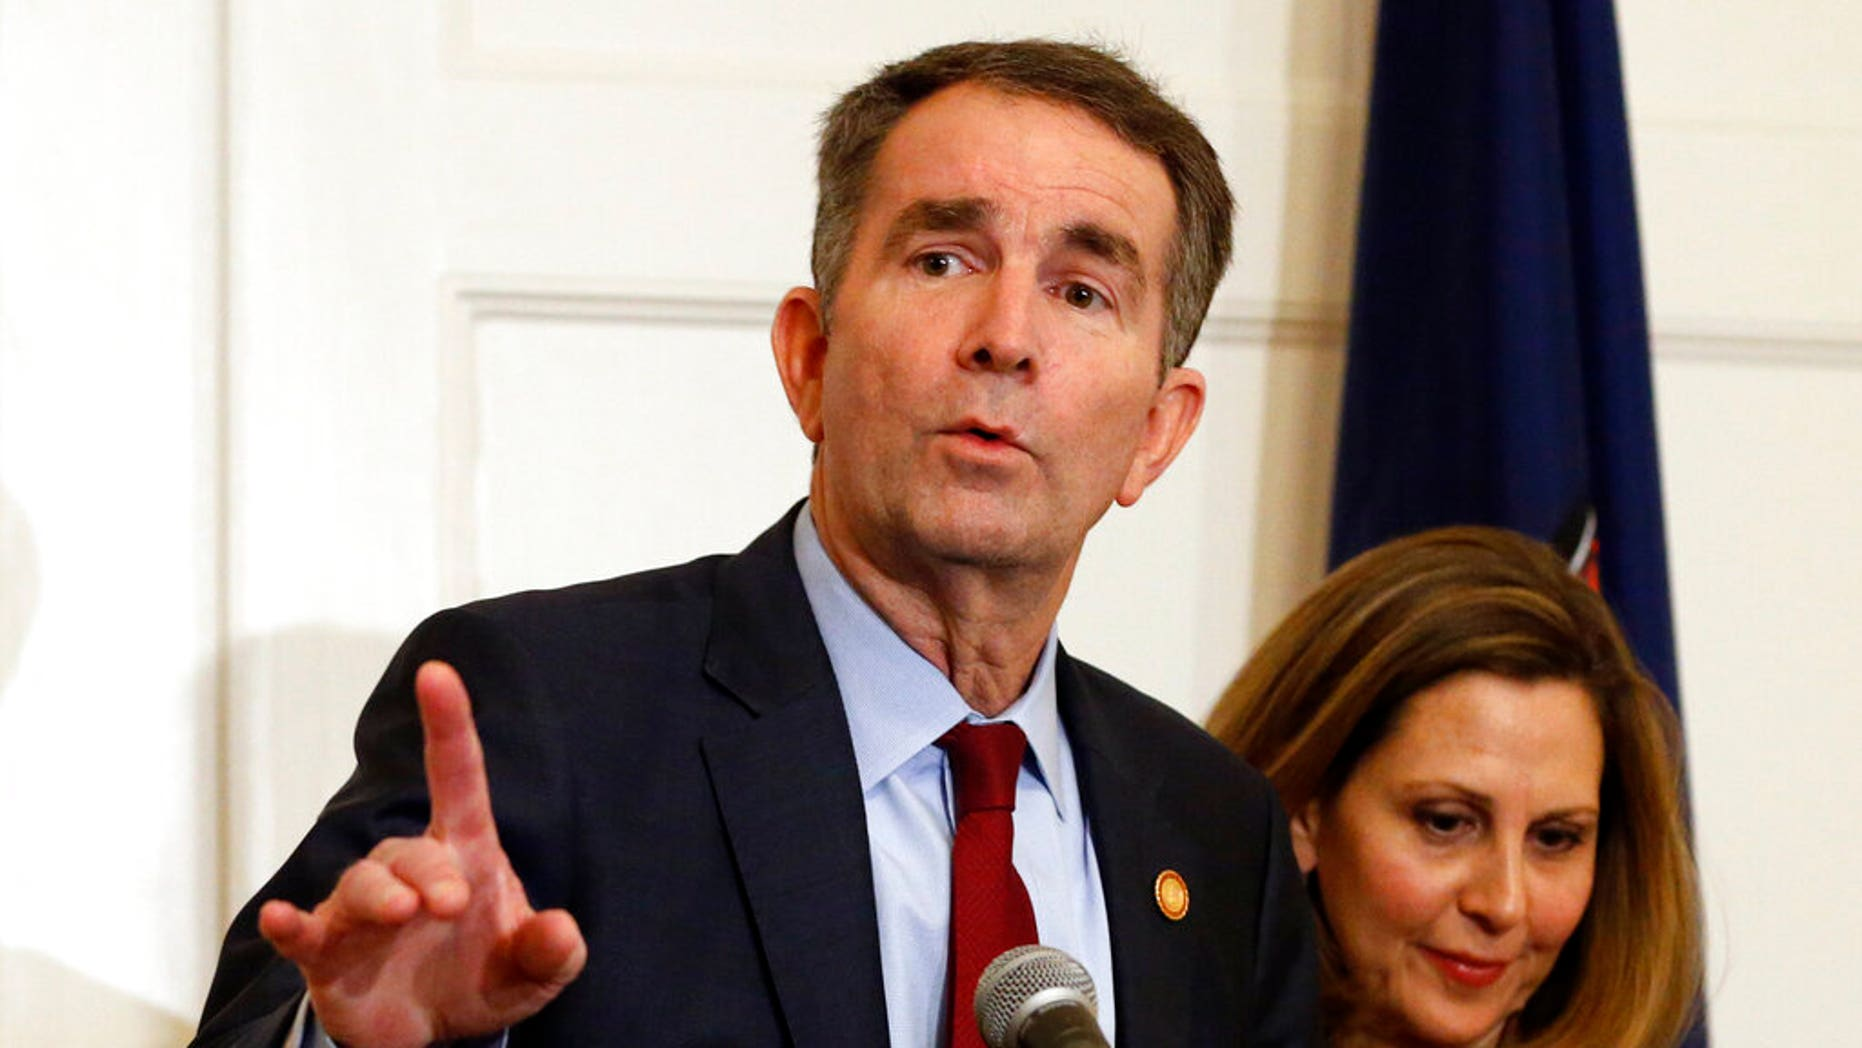 Pam Northam Criticized for Passing Out Cotton During Mansion Tour